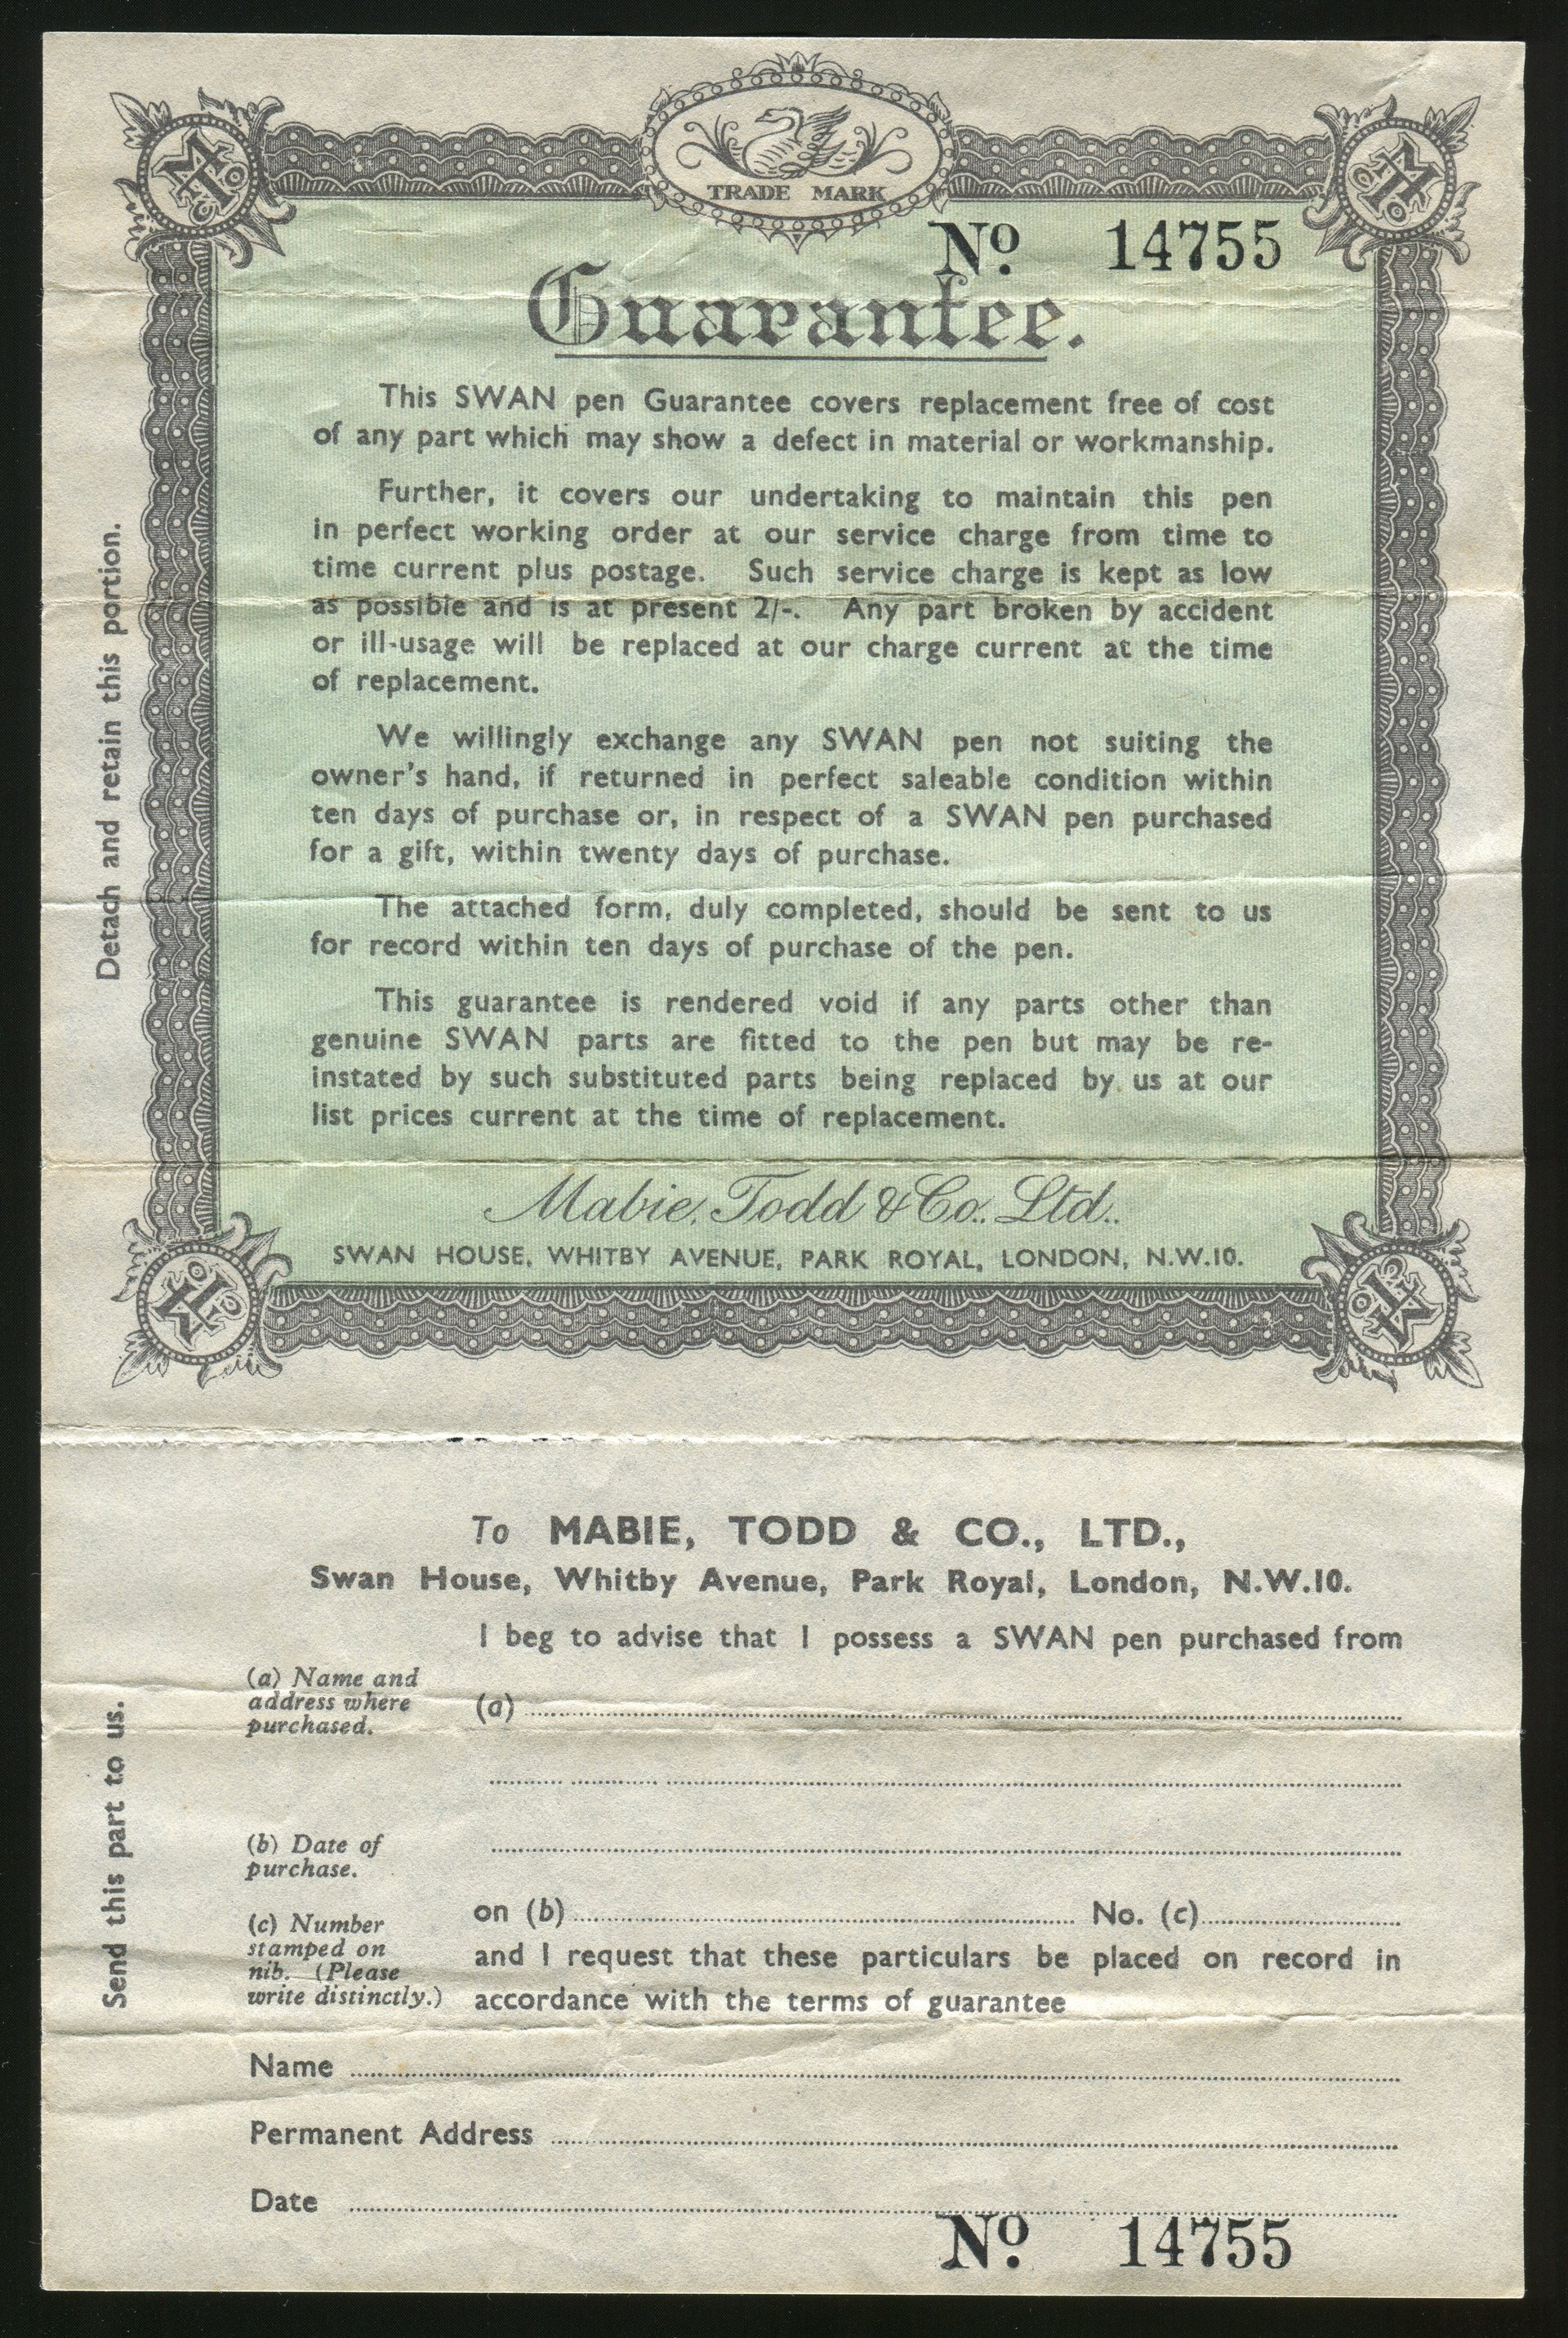 certificate of guarantee